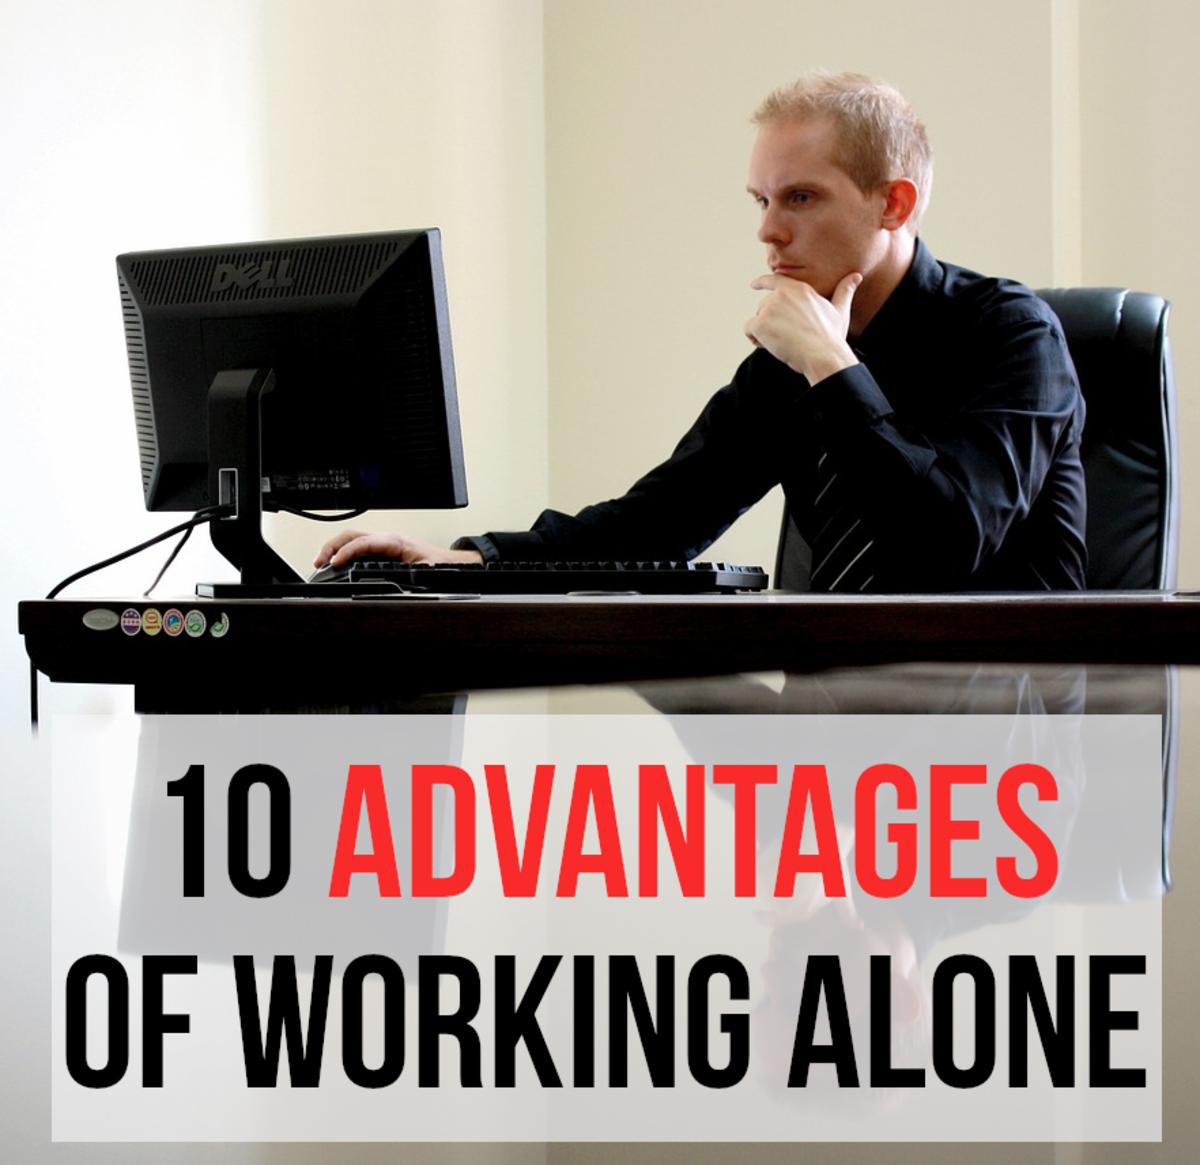 10 Benefits of Working Alone